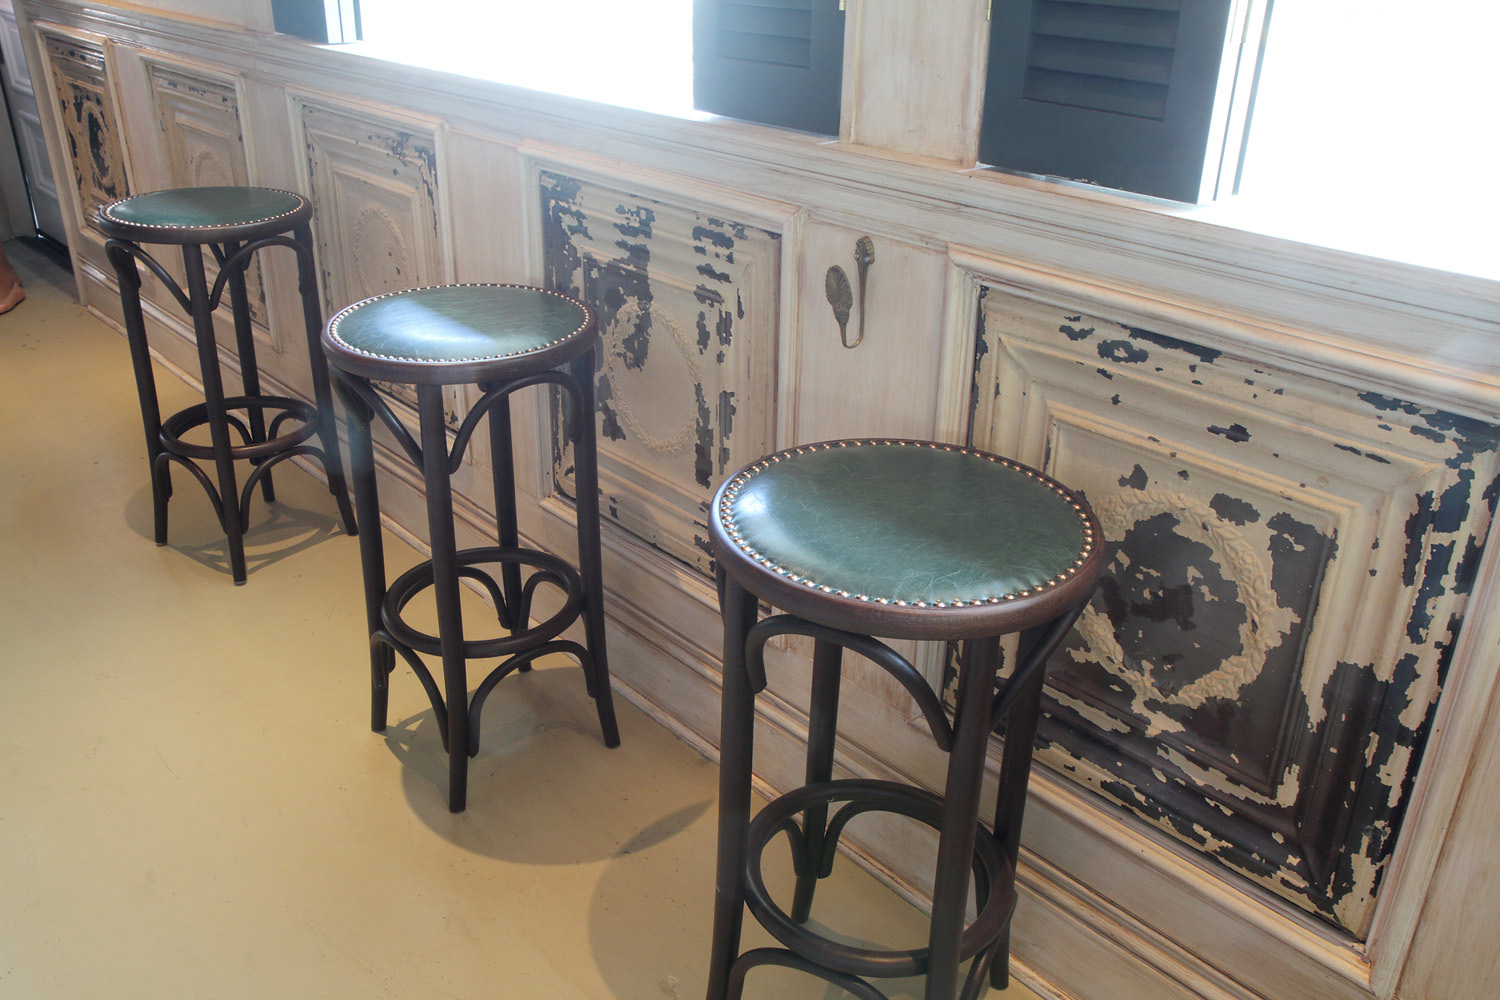 Hatchet Hall stools and wall design